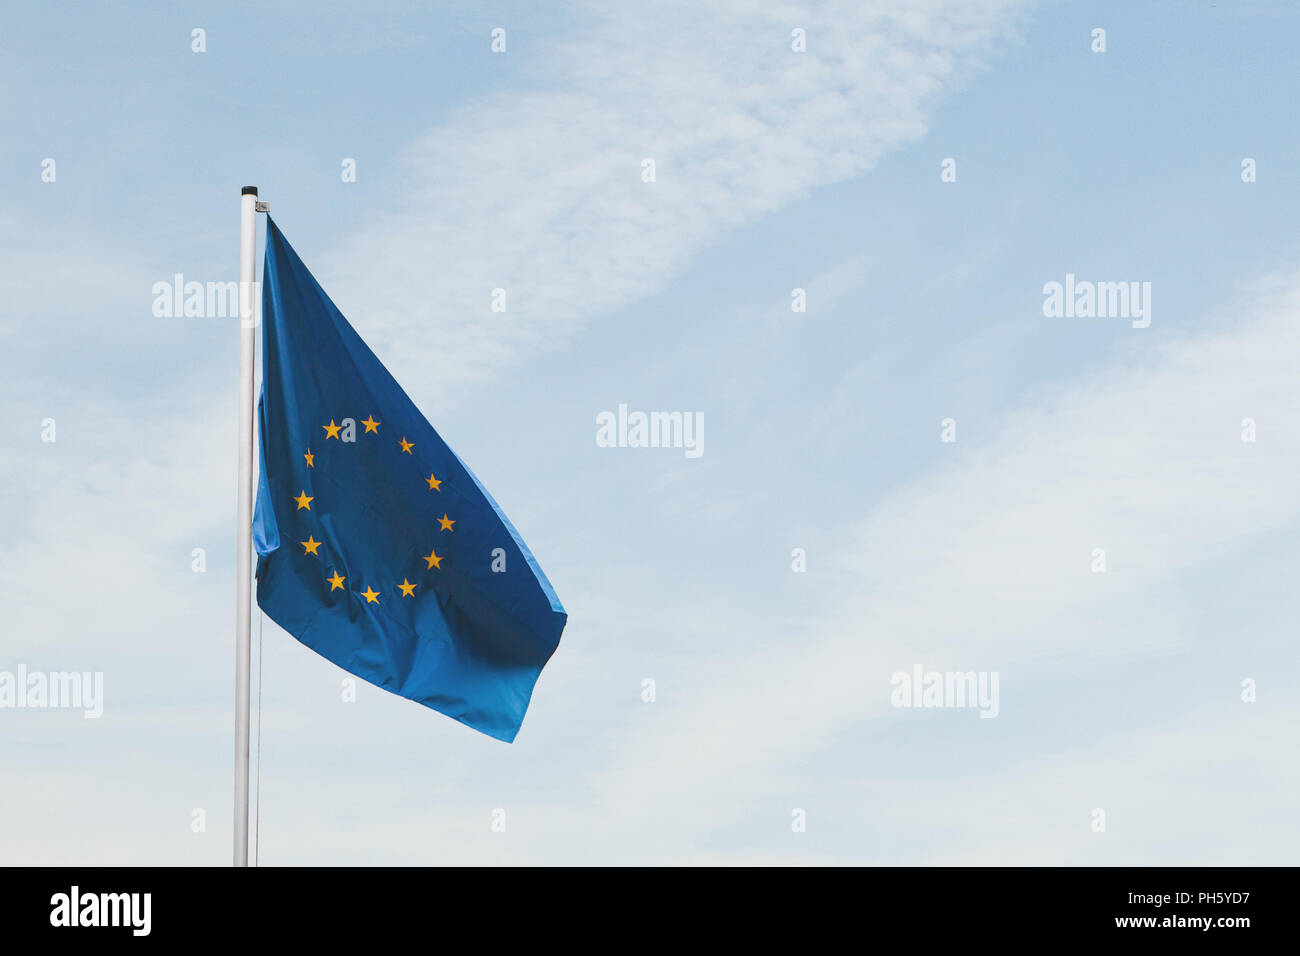 Flag of the European Union on the flagpole against the sky. - Stock Image